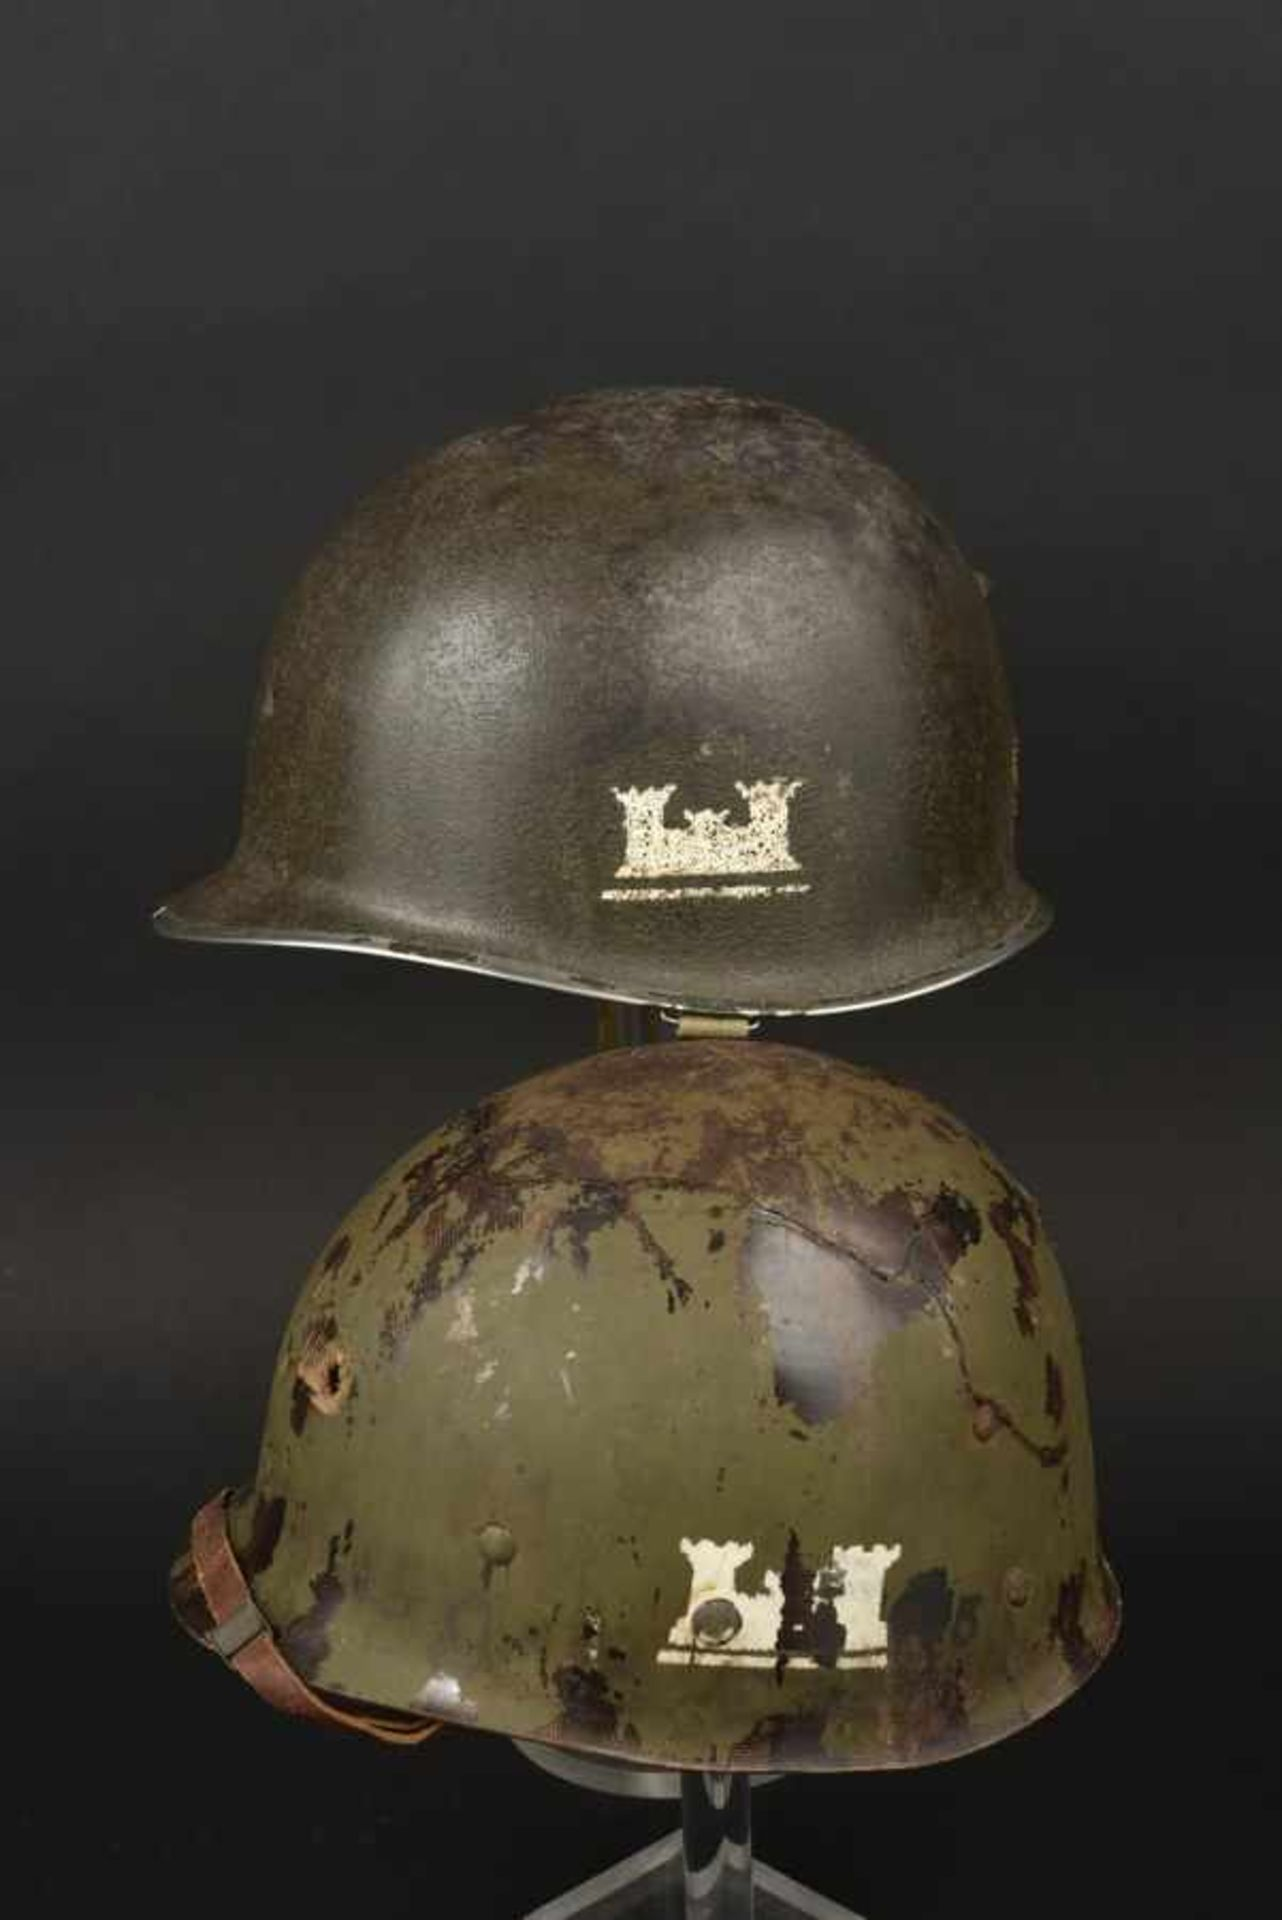 Casque avec impact de l'Engineers Archie K Snow du 105th Combat Engineers Battalion. Helmet